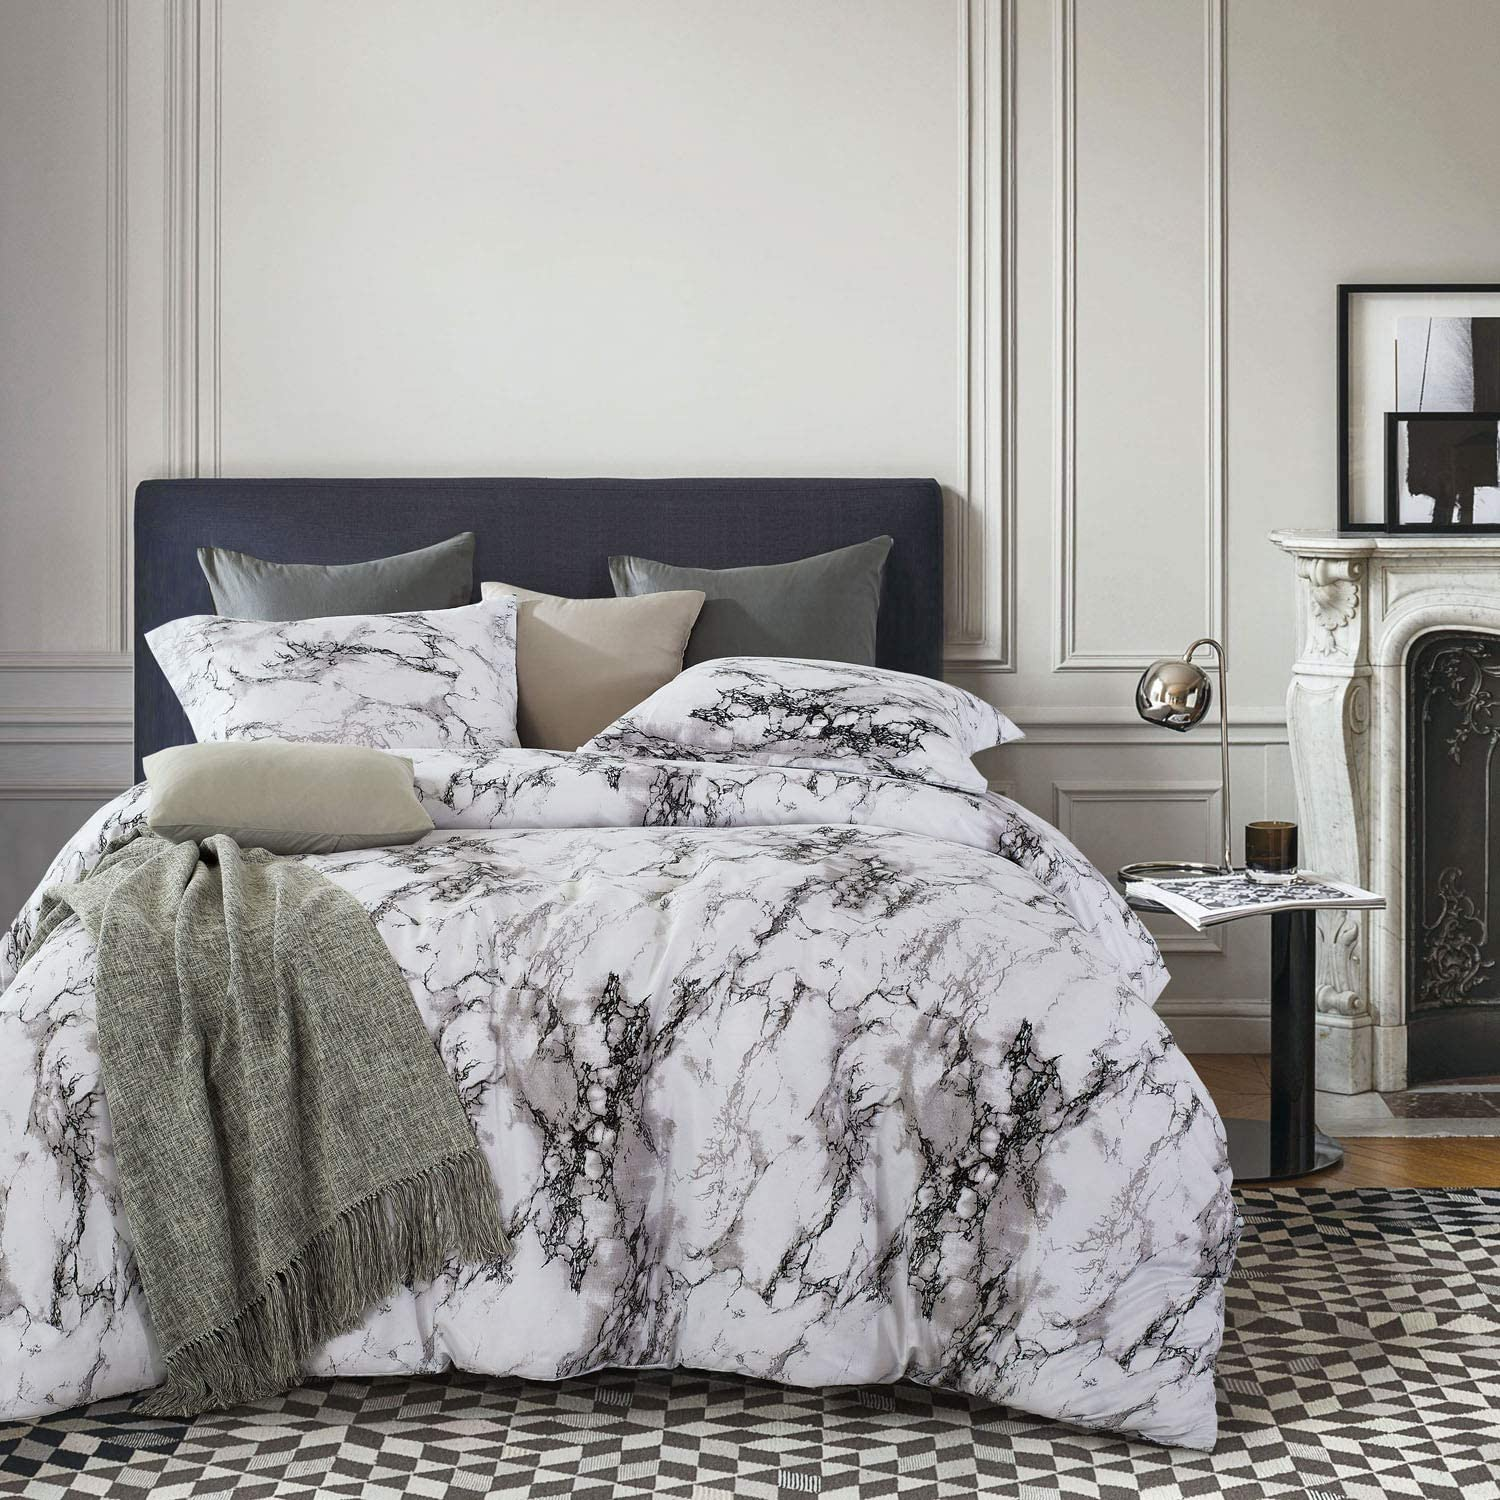 Wake In Cloud - Marble Comforter Set, Gray Grey Black and White Pattern Printed, Soft Microfiber Bedding (3pcs, California King Size)